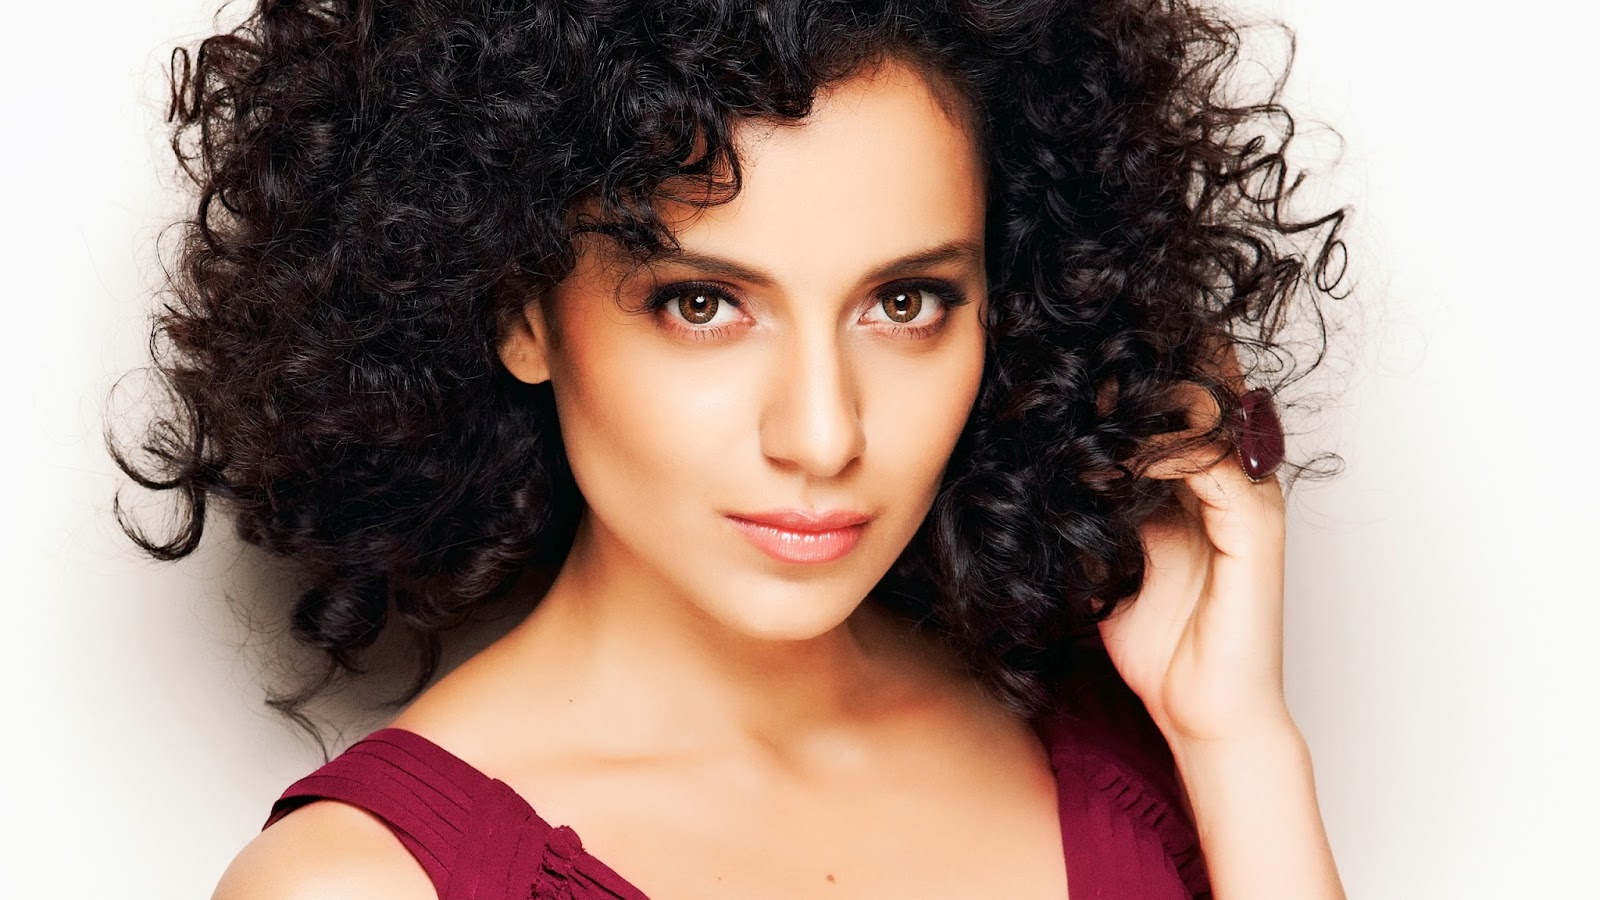 Kangna Ranaut Wallpapers Photo